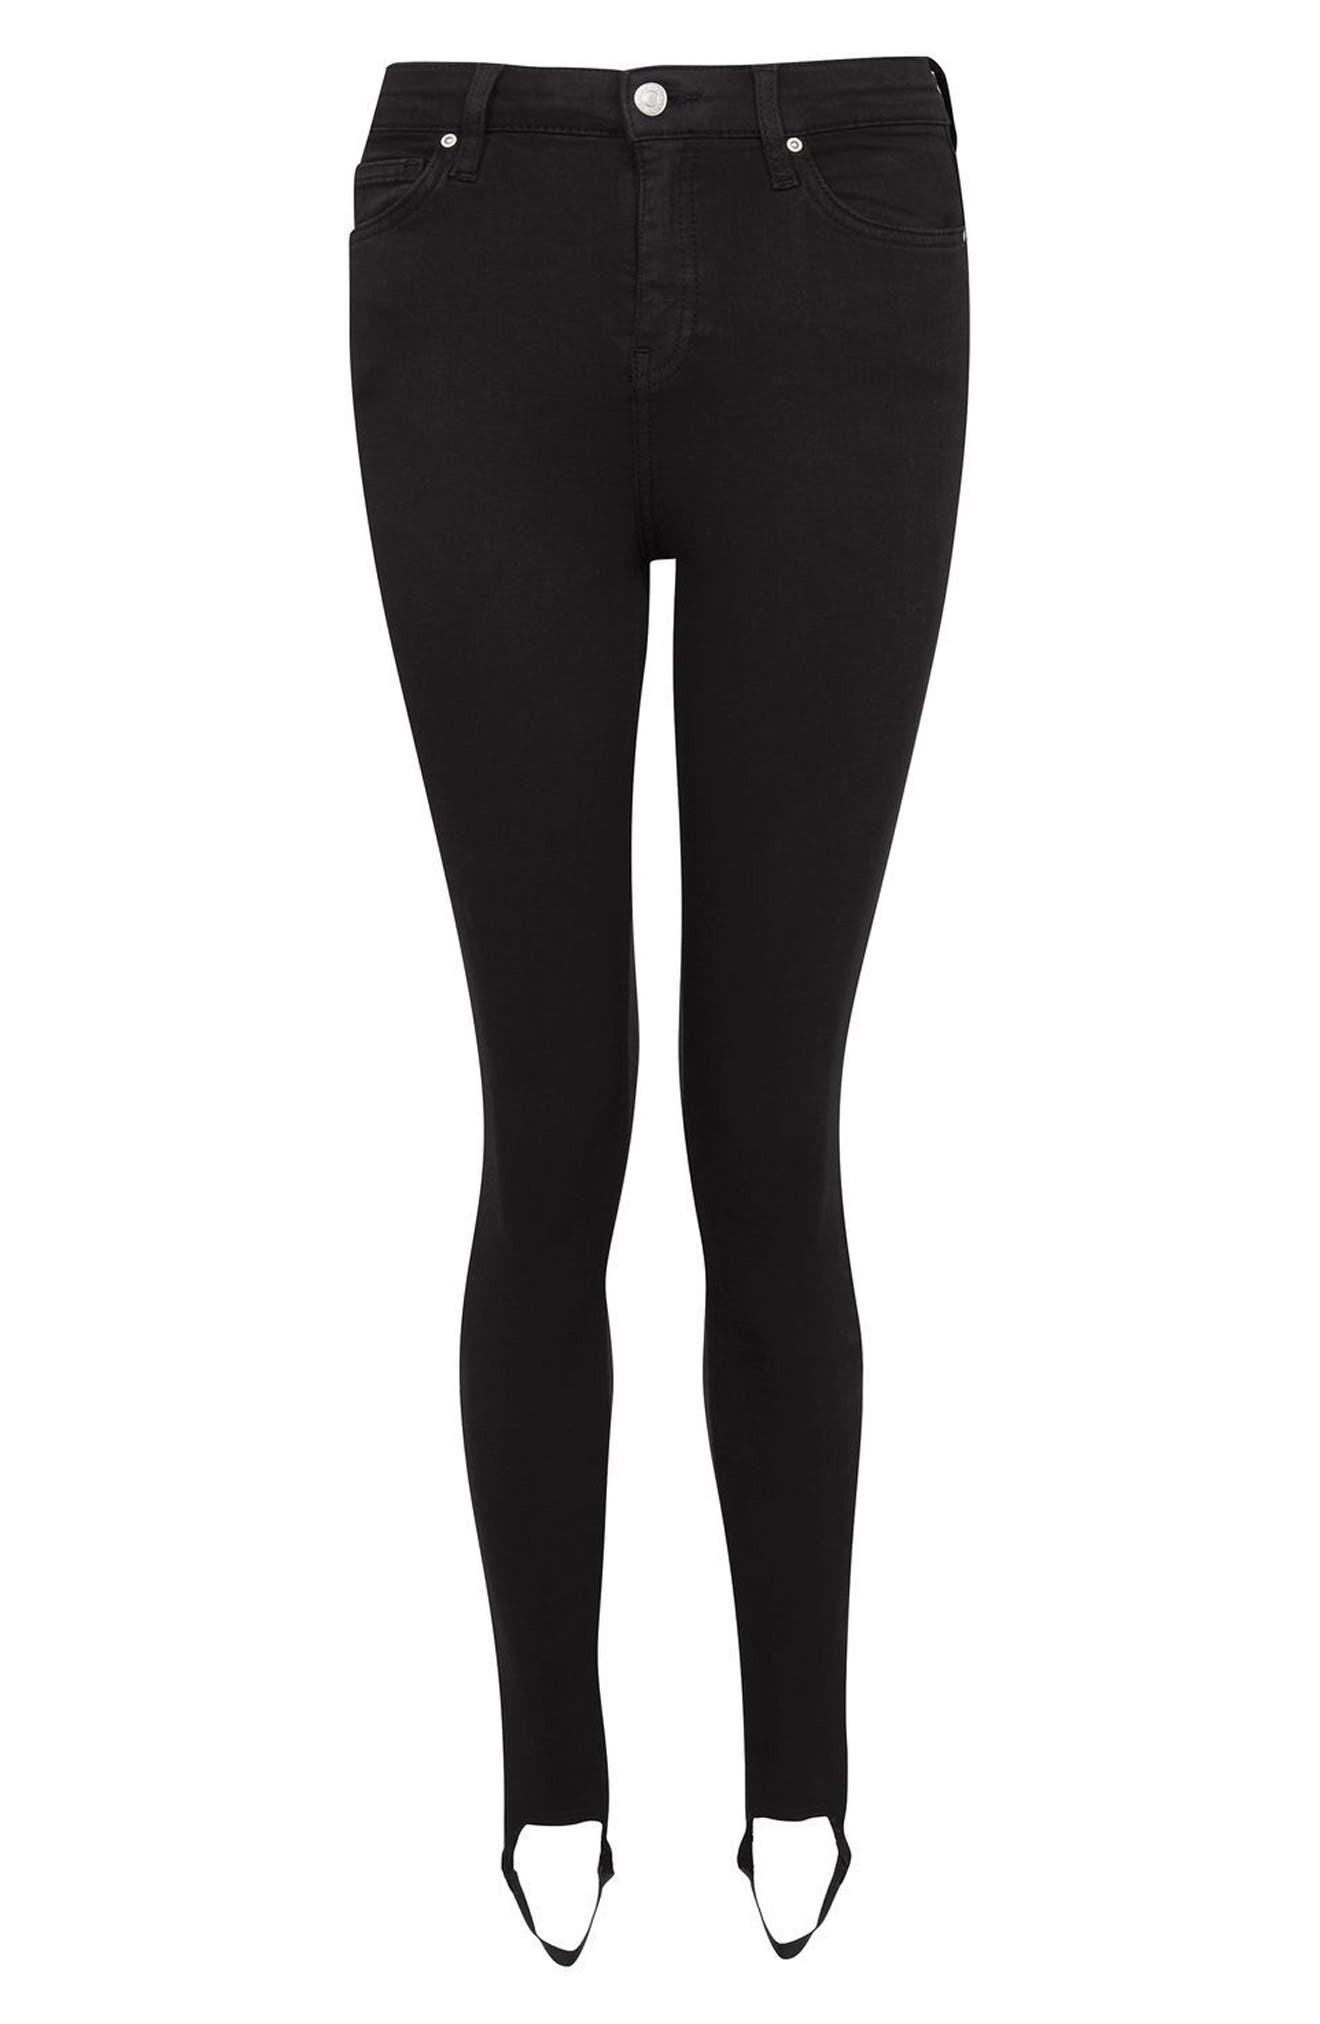 Jamie Stirrup Skinny Jeans,                             Alternate thumbnail 3, color,                             Black